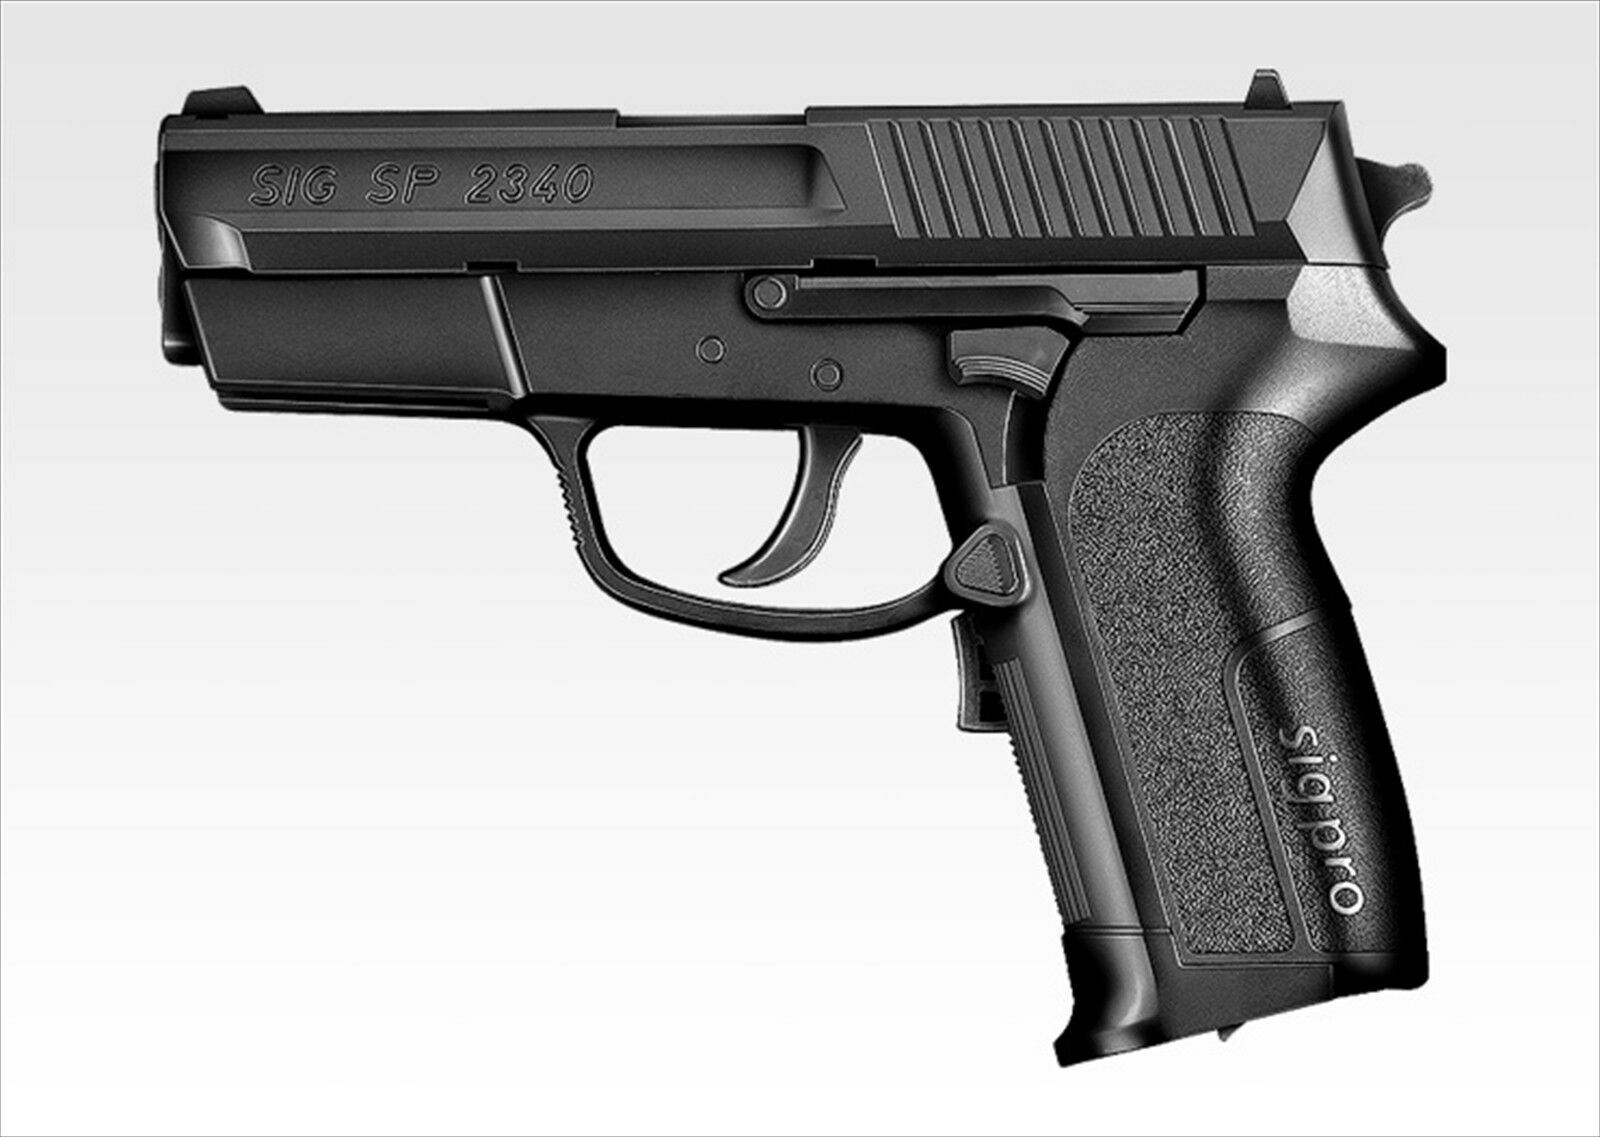 SIG Pro SP2340 Electric Hand Gun Tokyo Marui Japan for 10 years F/S